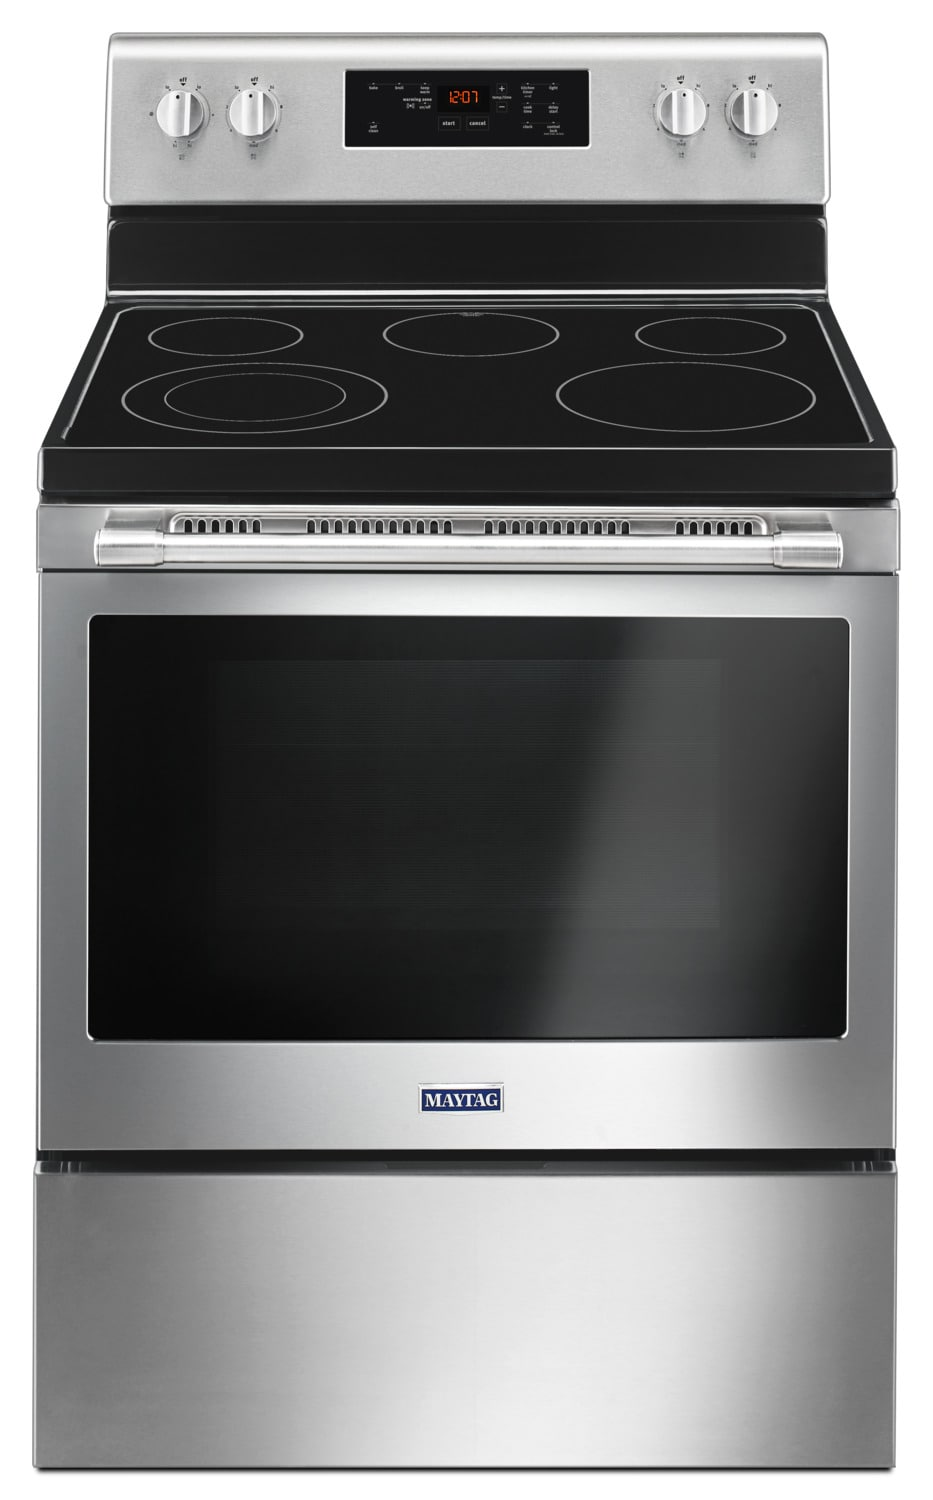 Maytag Stainless Steel Freestanding Electric Range (5.3 Cu. Ft.) - YMER6600FZ